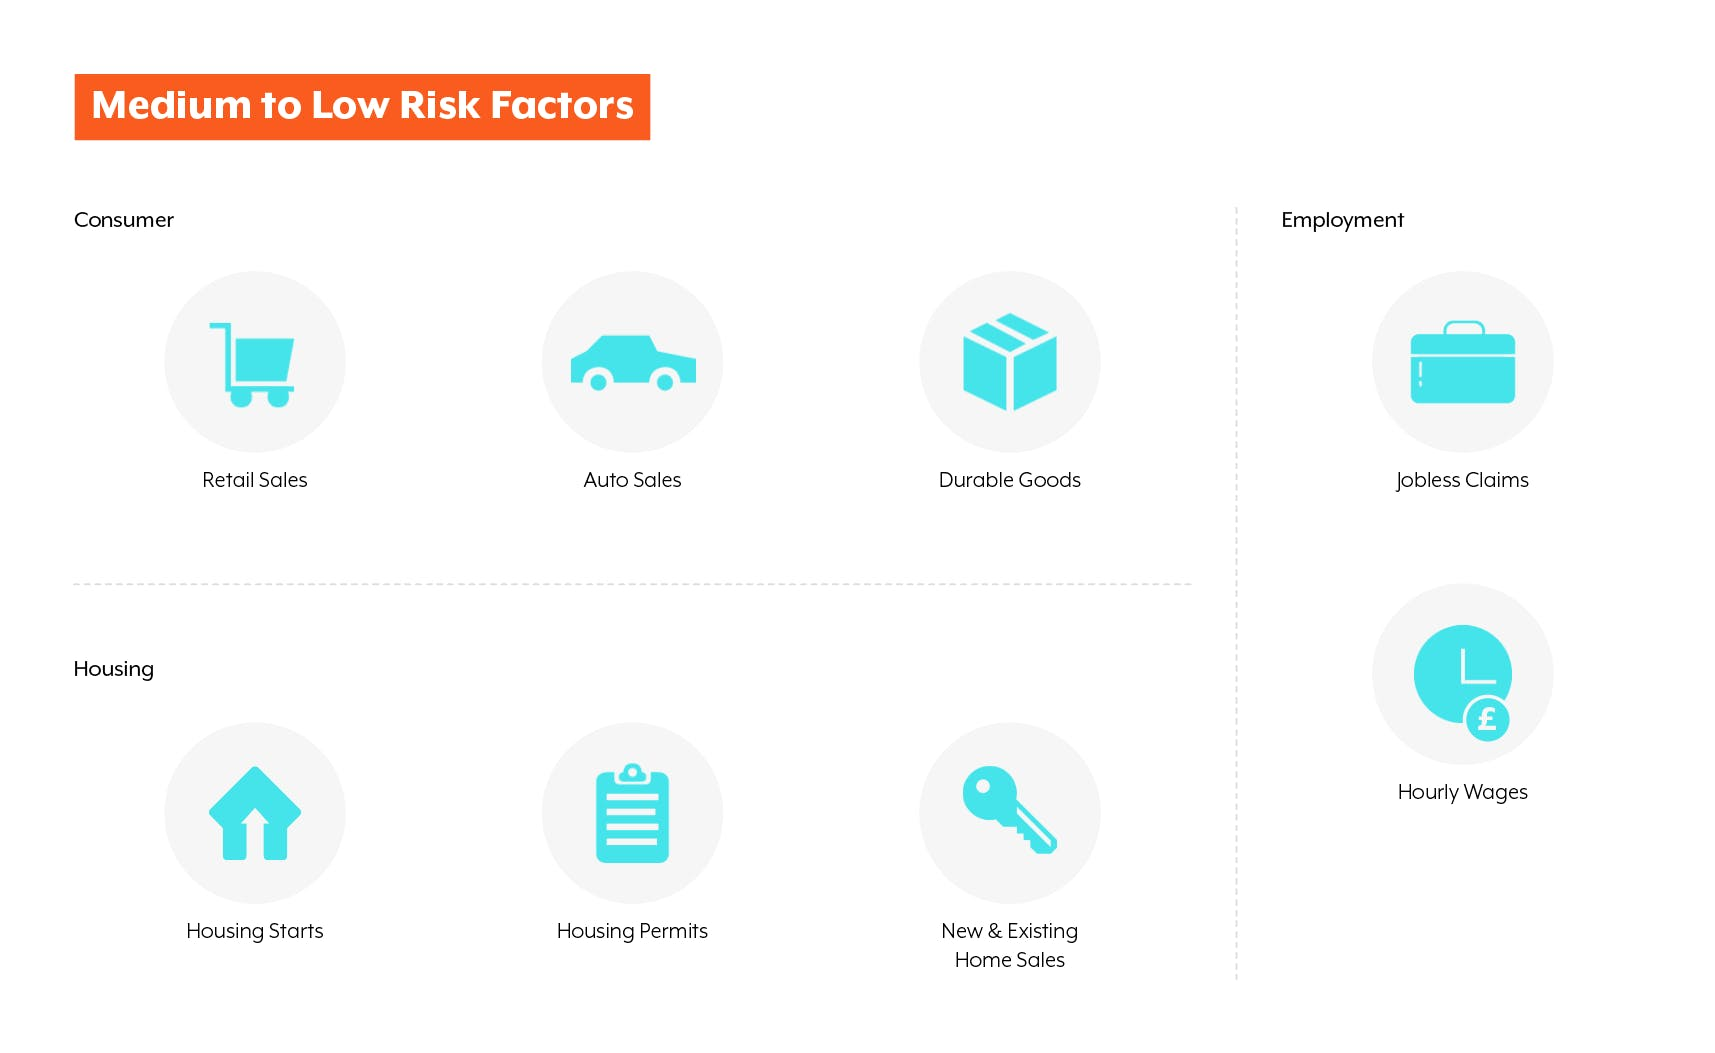 Medium to Low Risk Factors